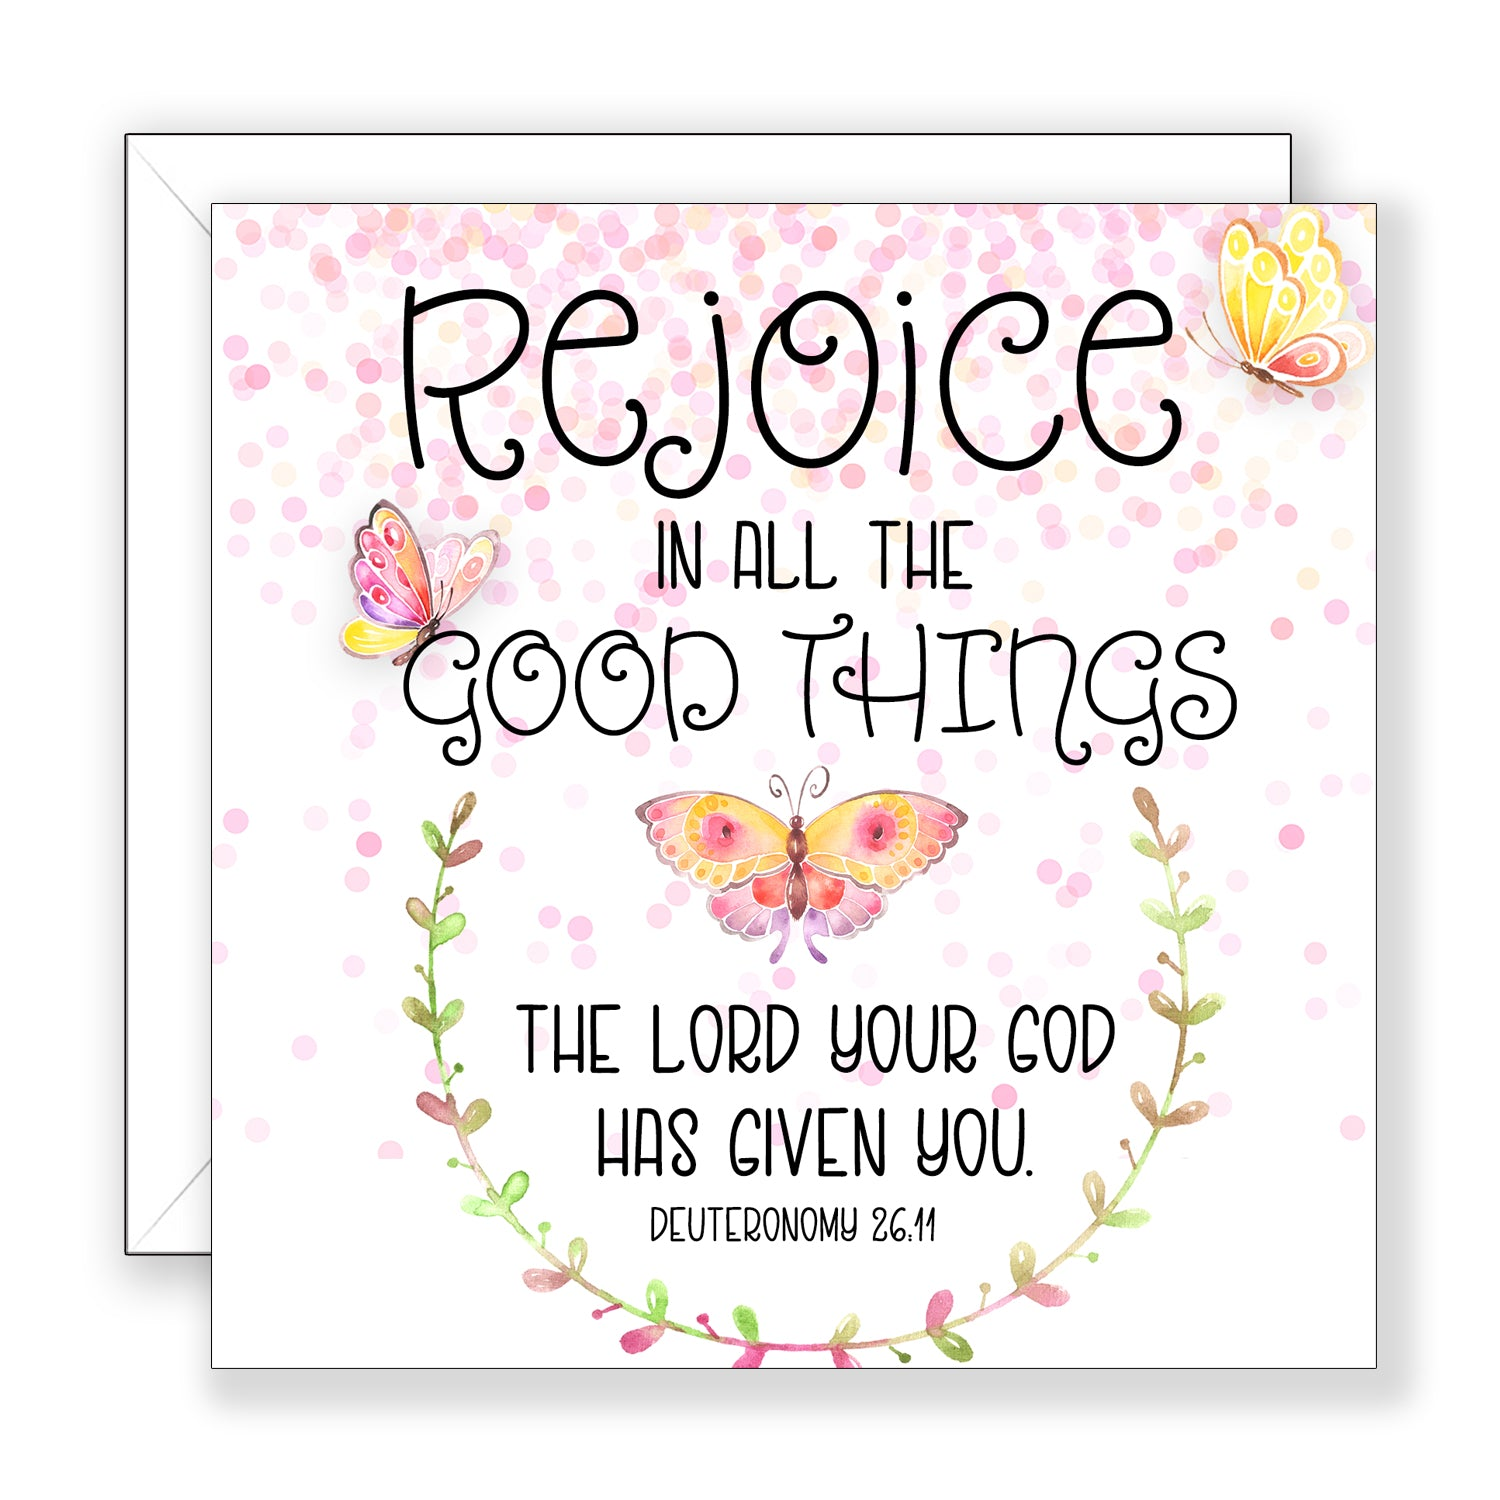 Rejoice In All - Encouragement Card